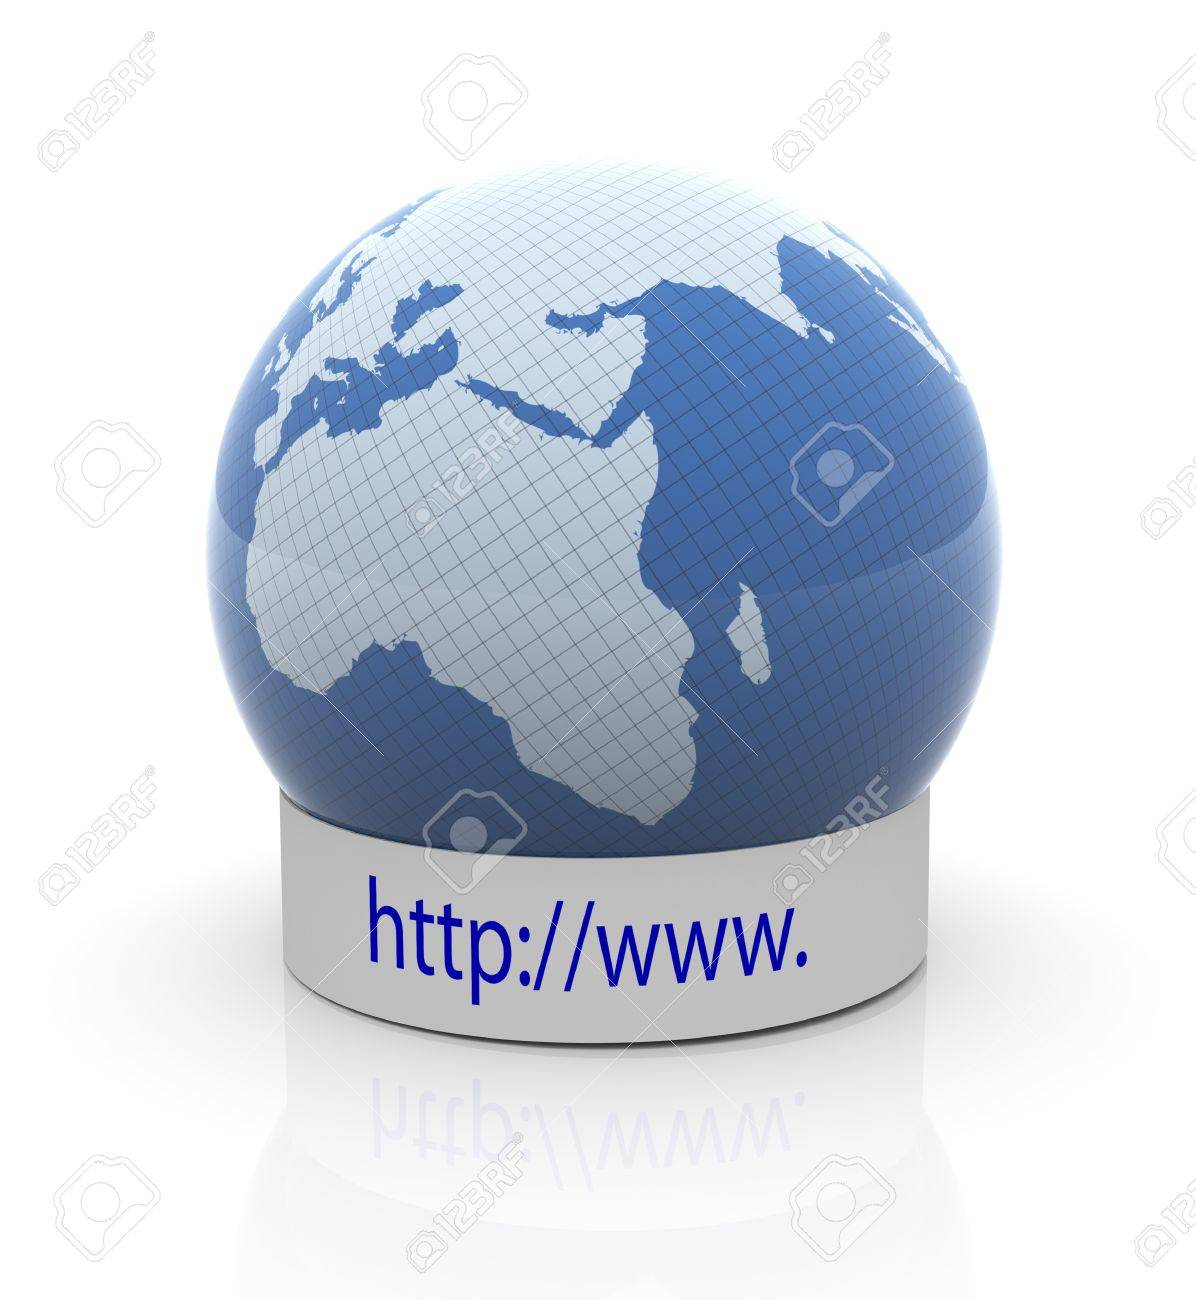 3d render of globe with http://www text Stock Photo - 10345727